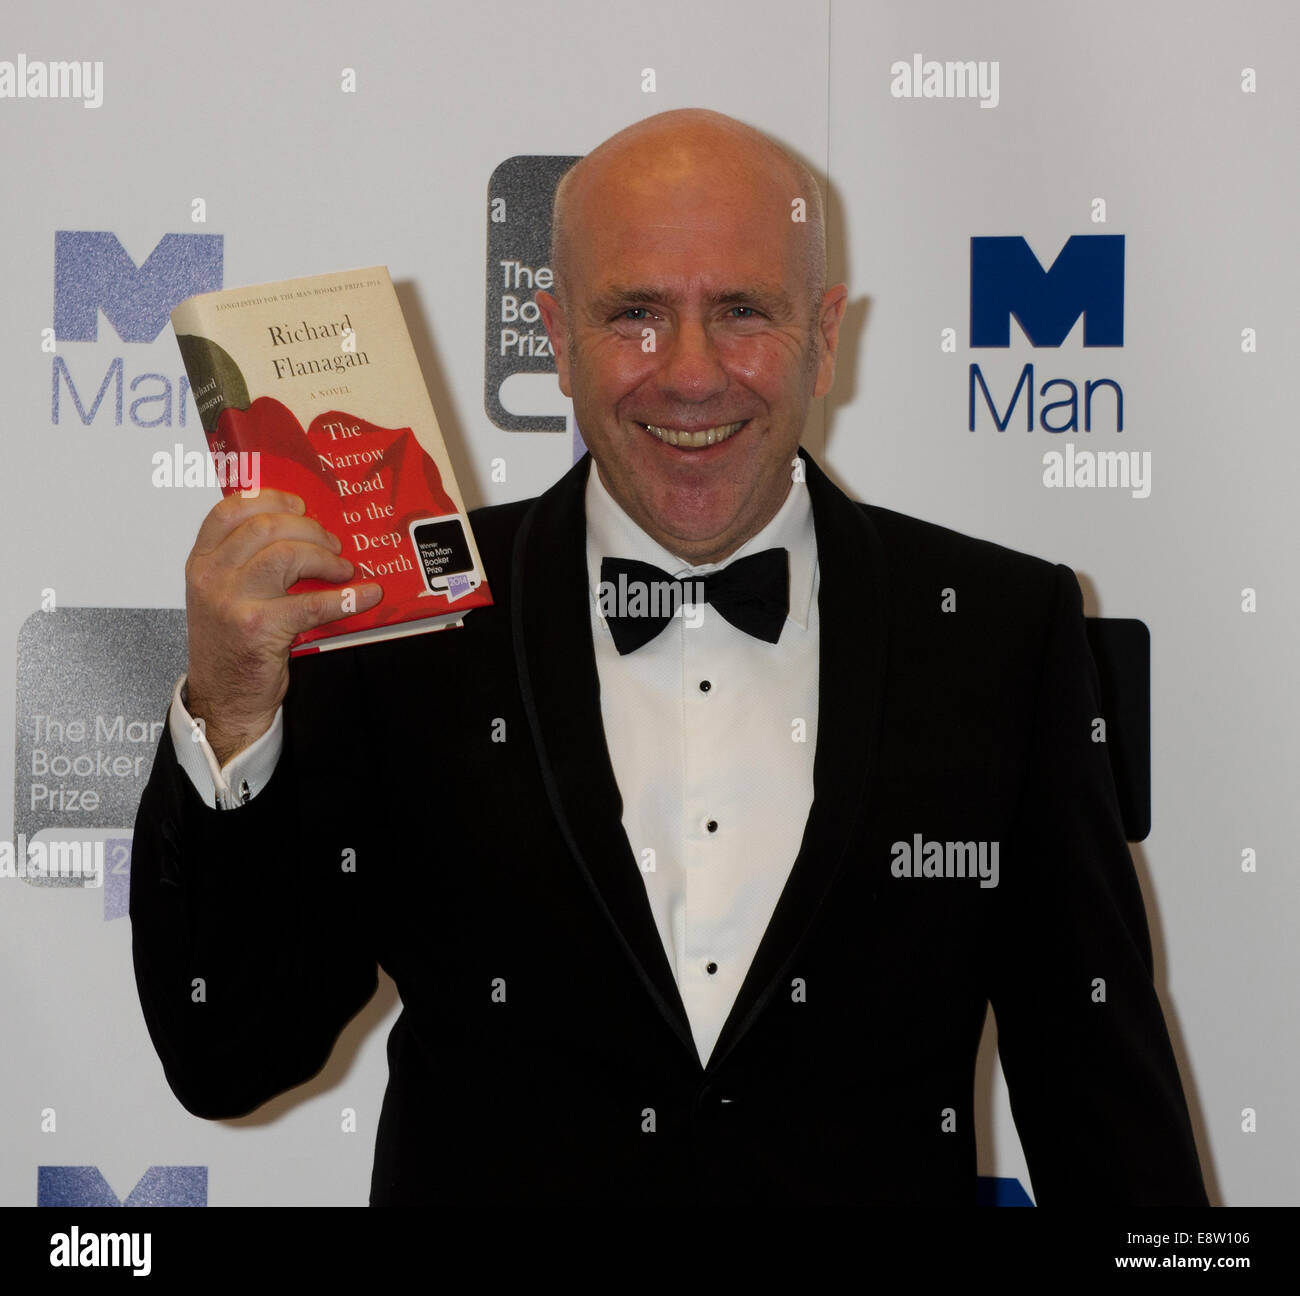 Man Booker Prize for Fiction 2014 winner Richard Flanagan for The Narrow Road to the Deep North (Chatto & Windus) - Stock Image